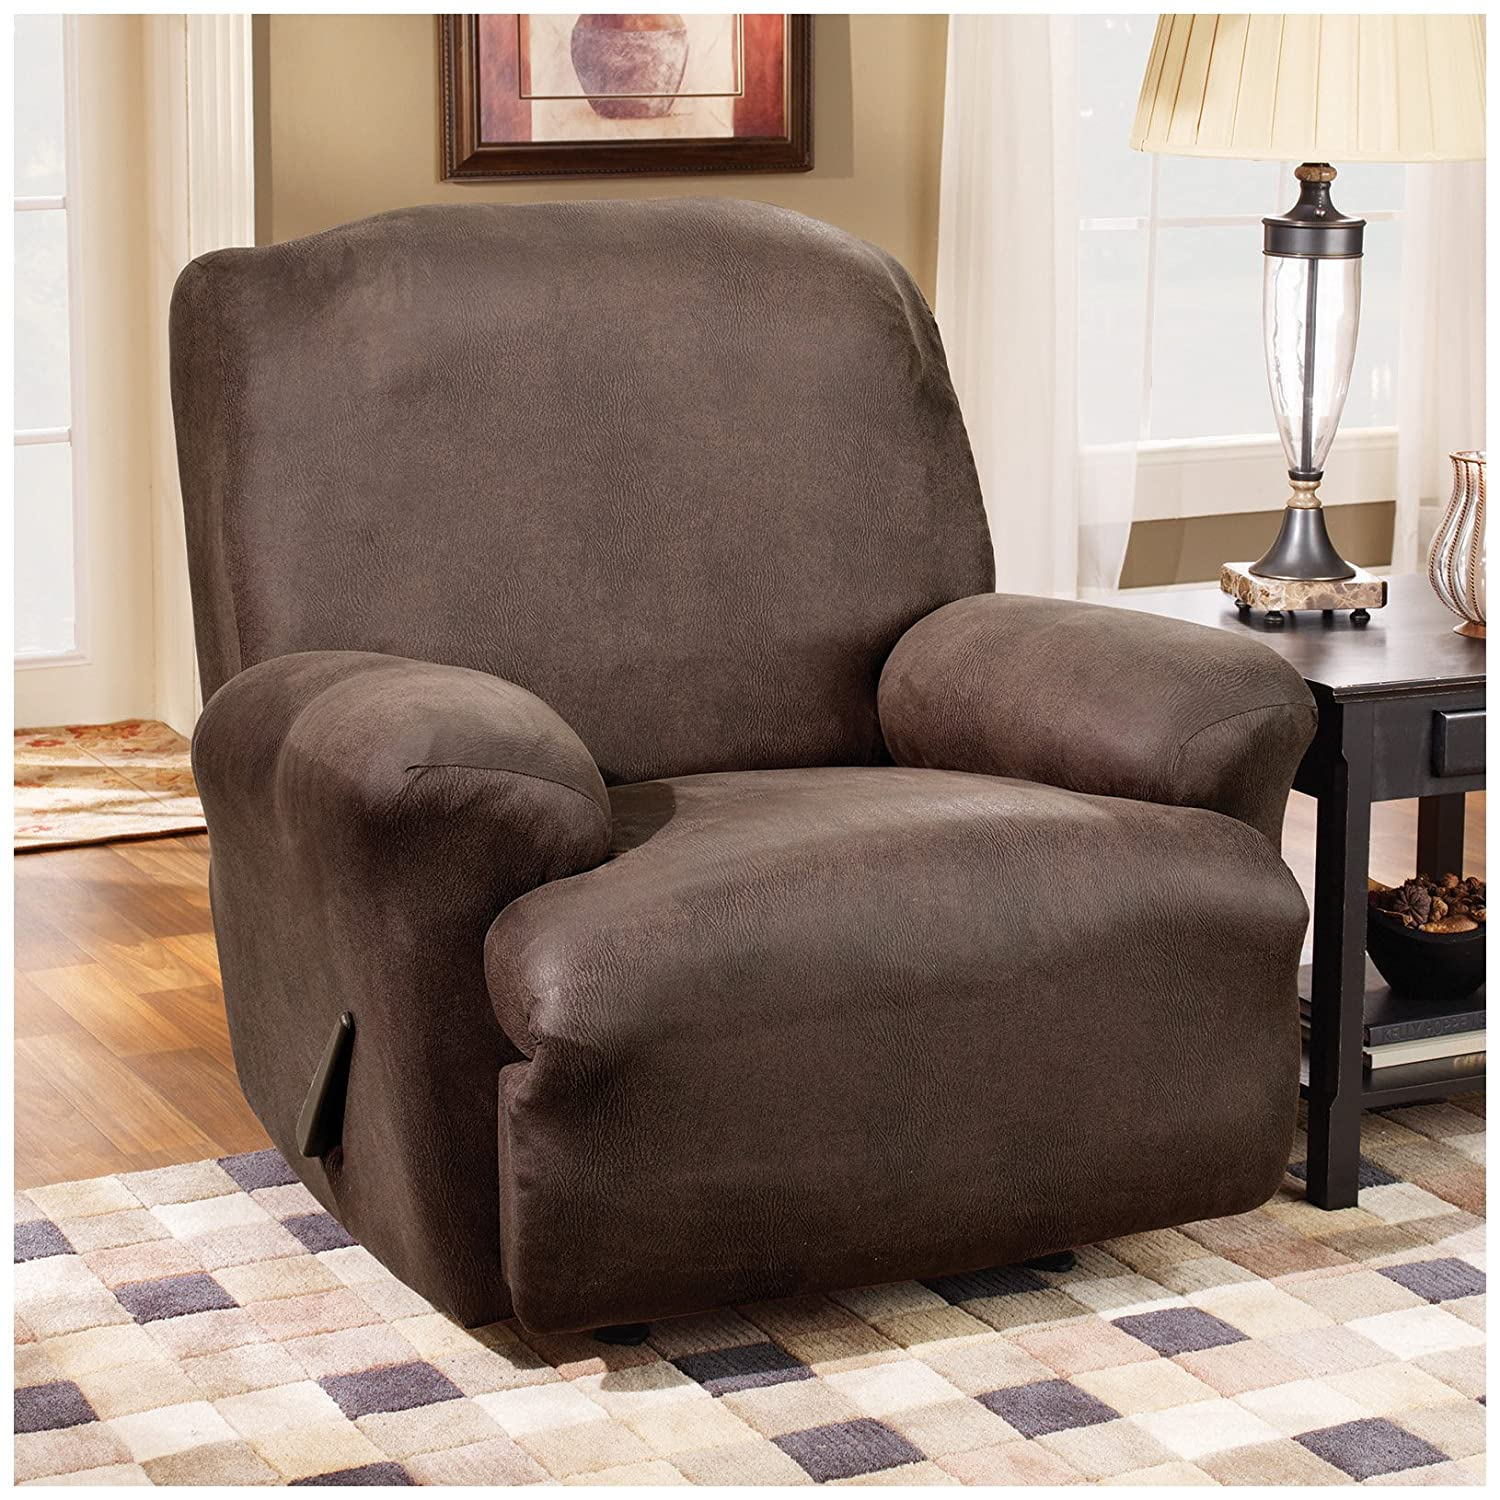 Amazoncom Sure Fit Stretch Leather 1Piece Recliner Slipcover